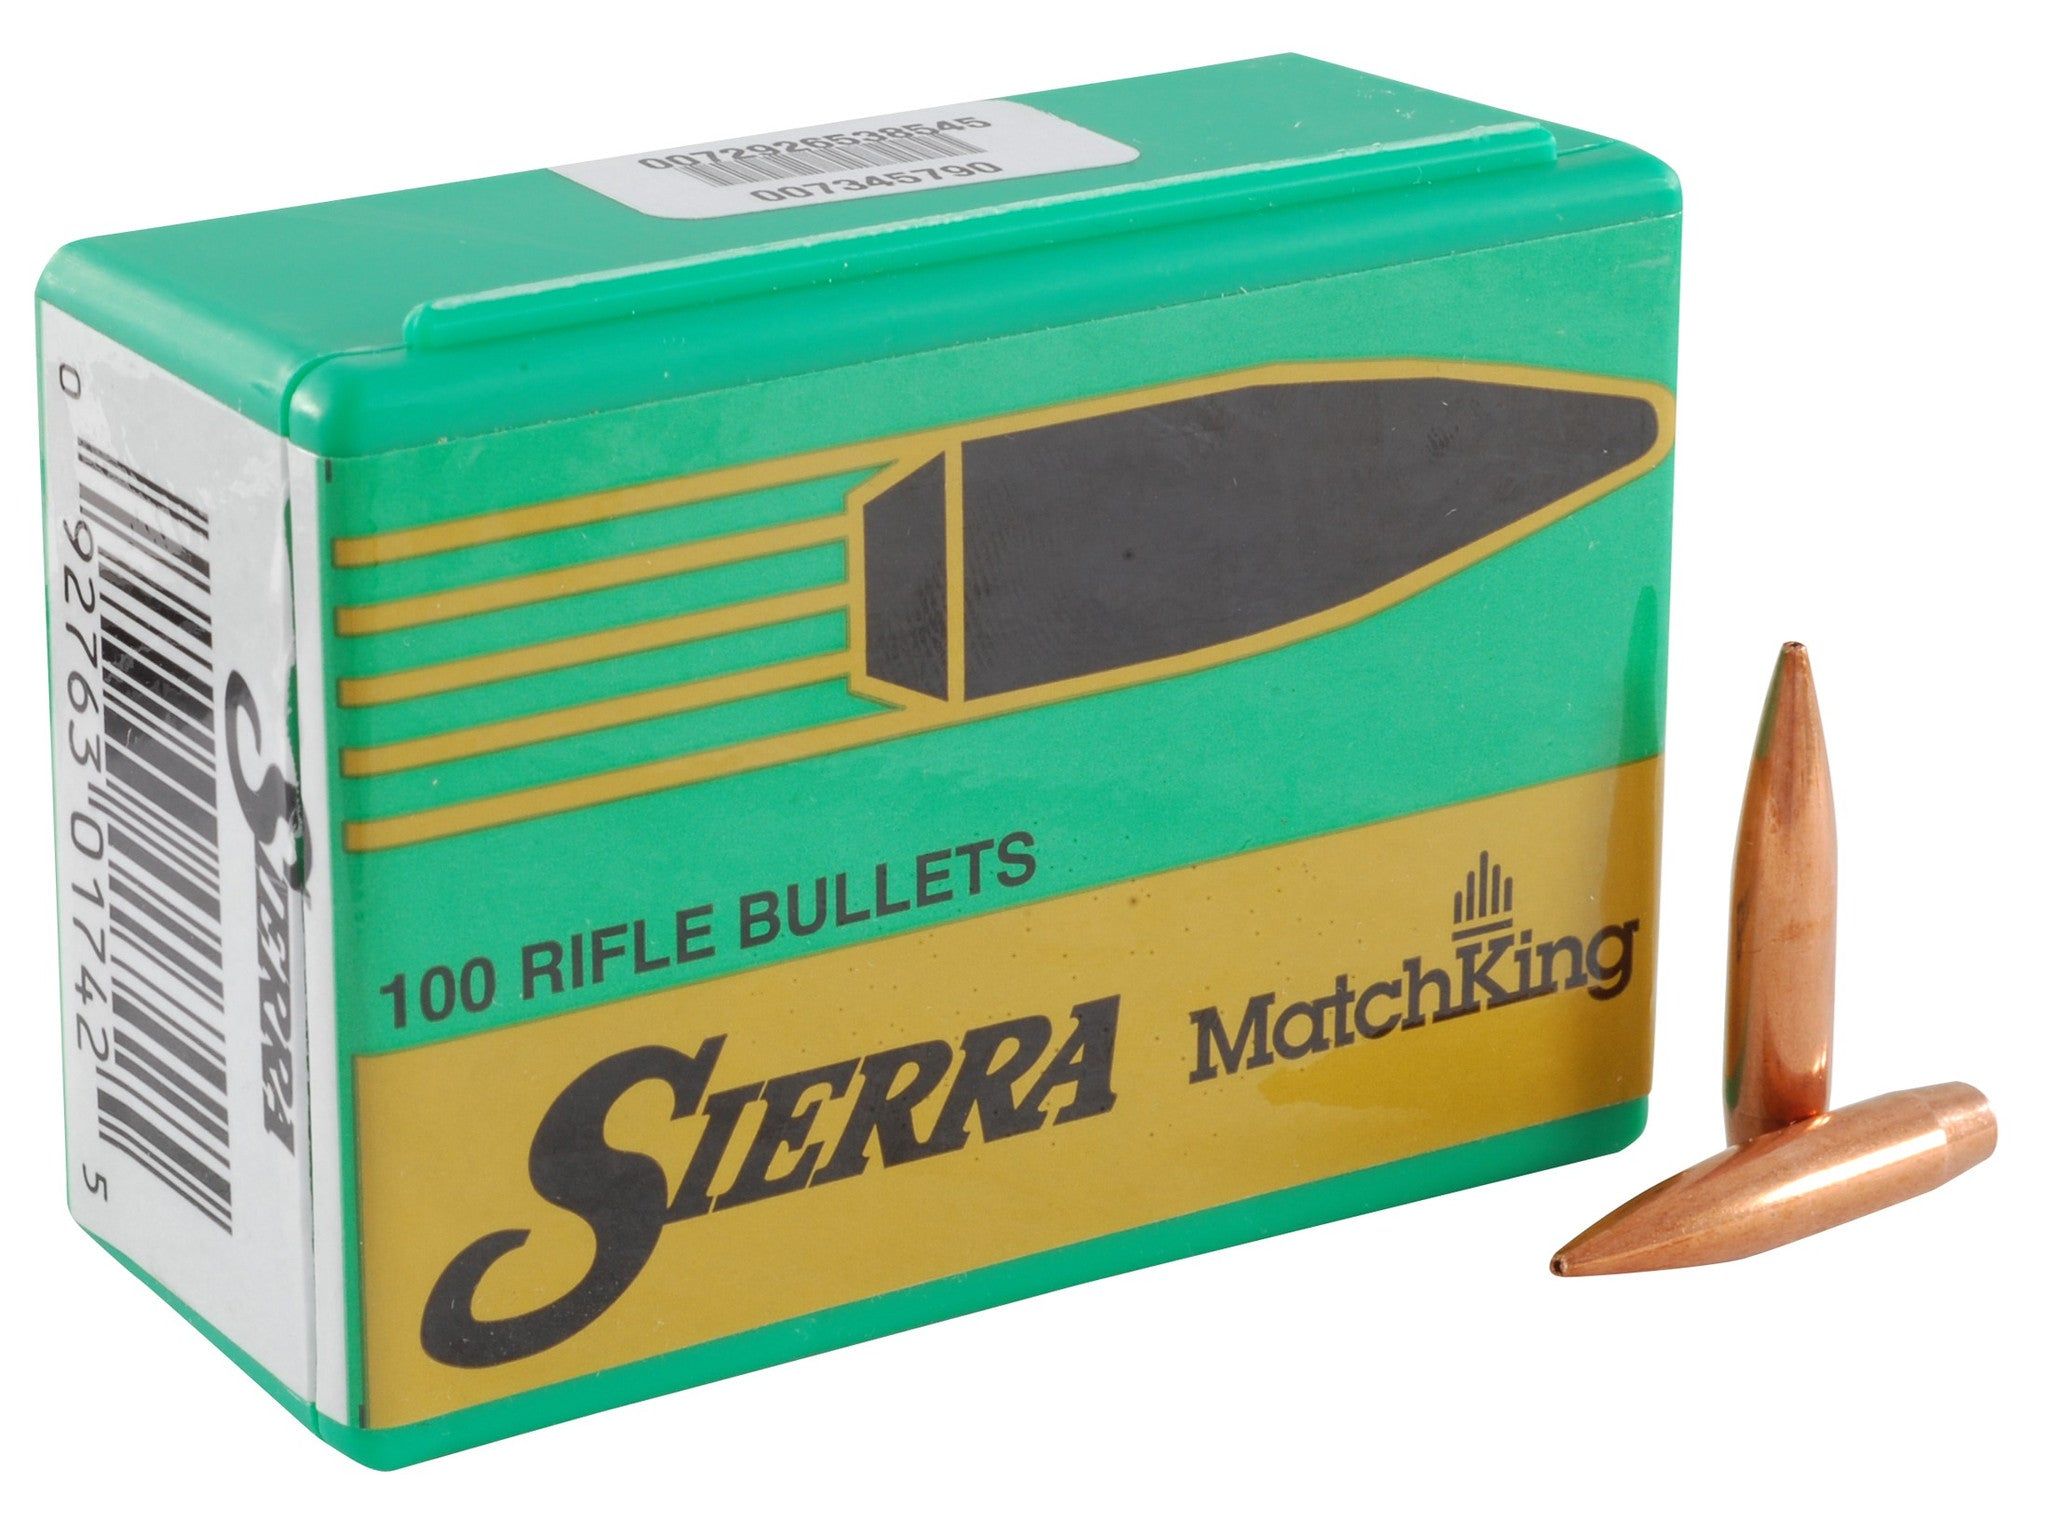 Sierra MatchKing Bullets 264 Caliber, 6.5mm (264 Diameter) 142 Grain Jacketed Hollow Point Boat Tail (100Pk)